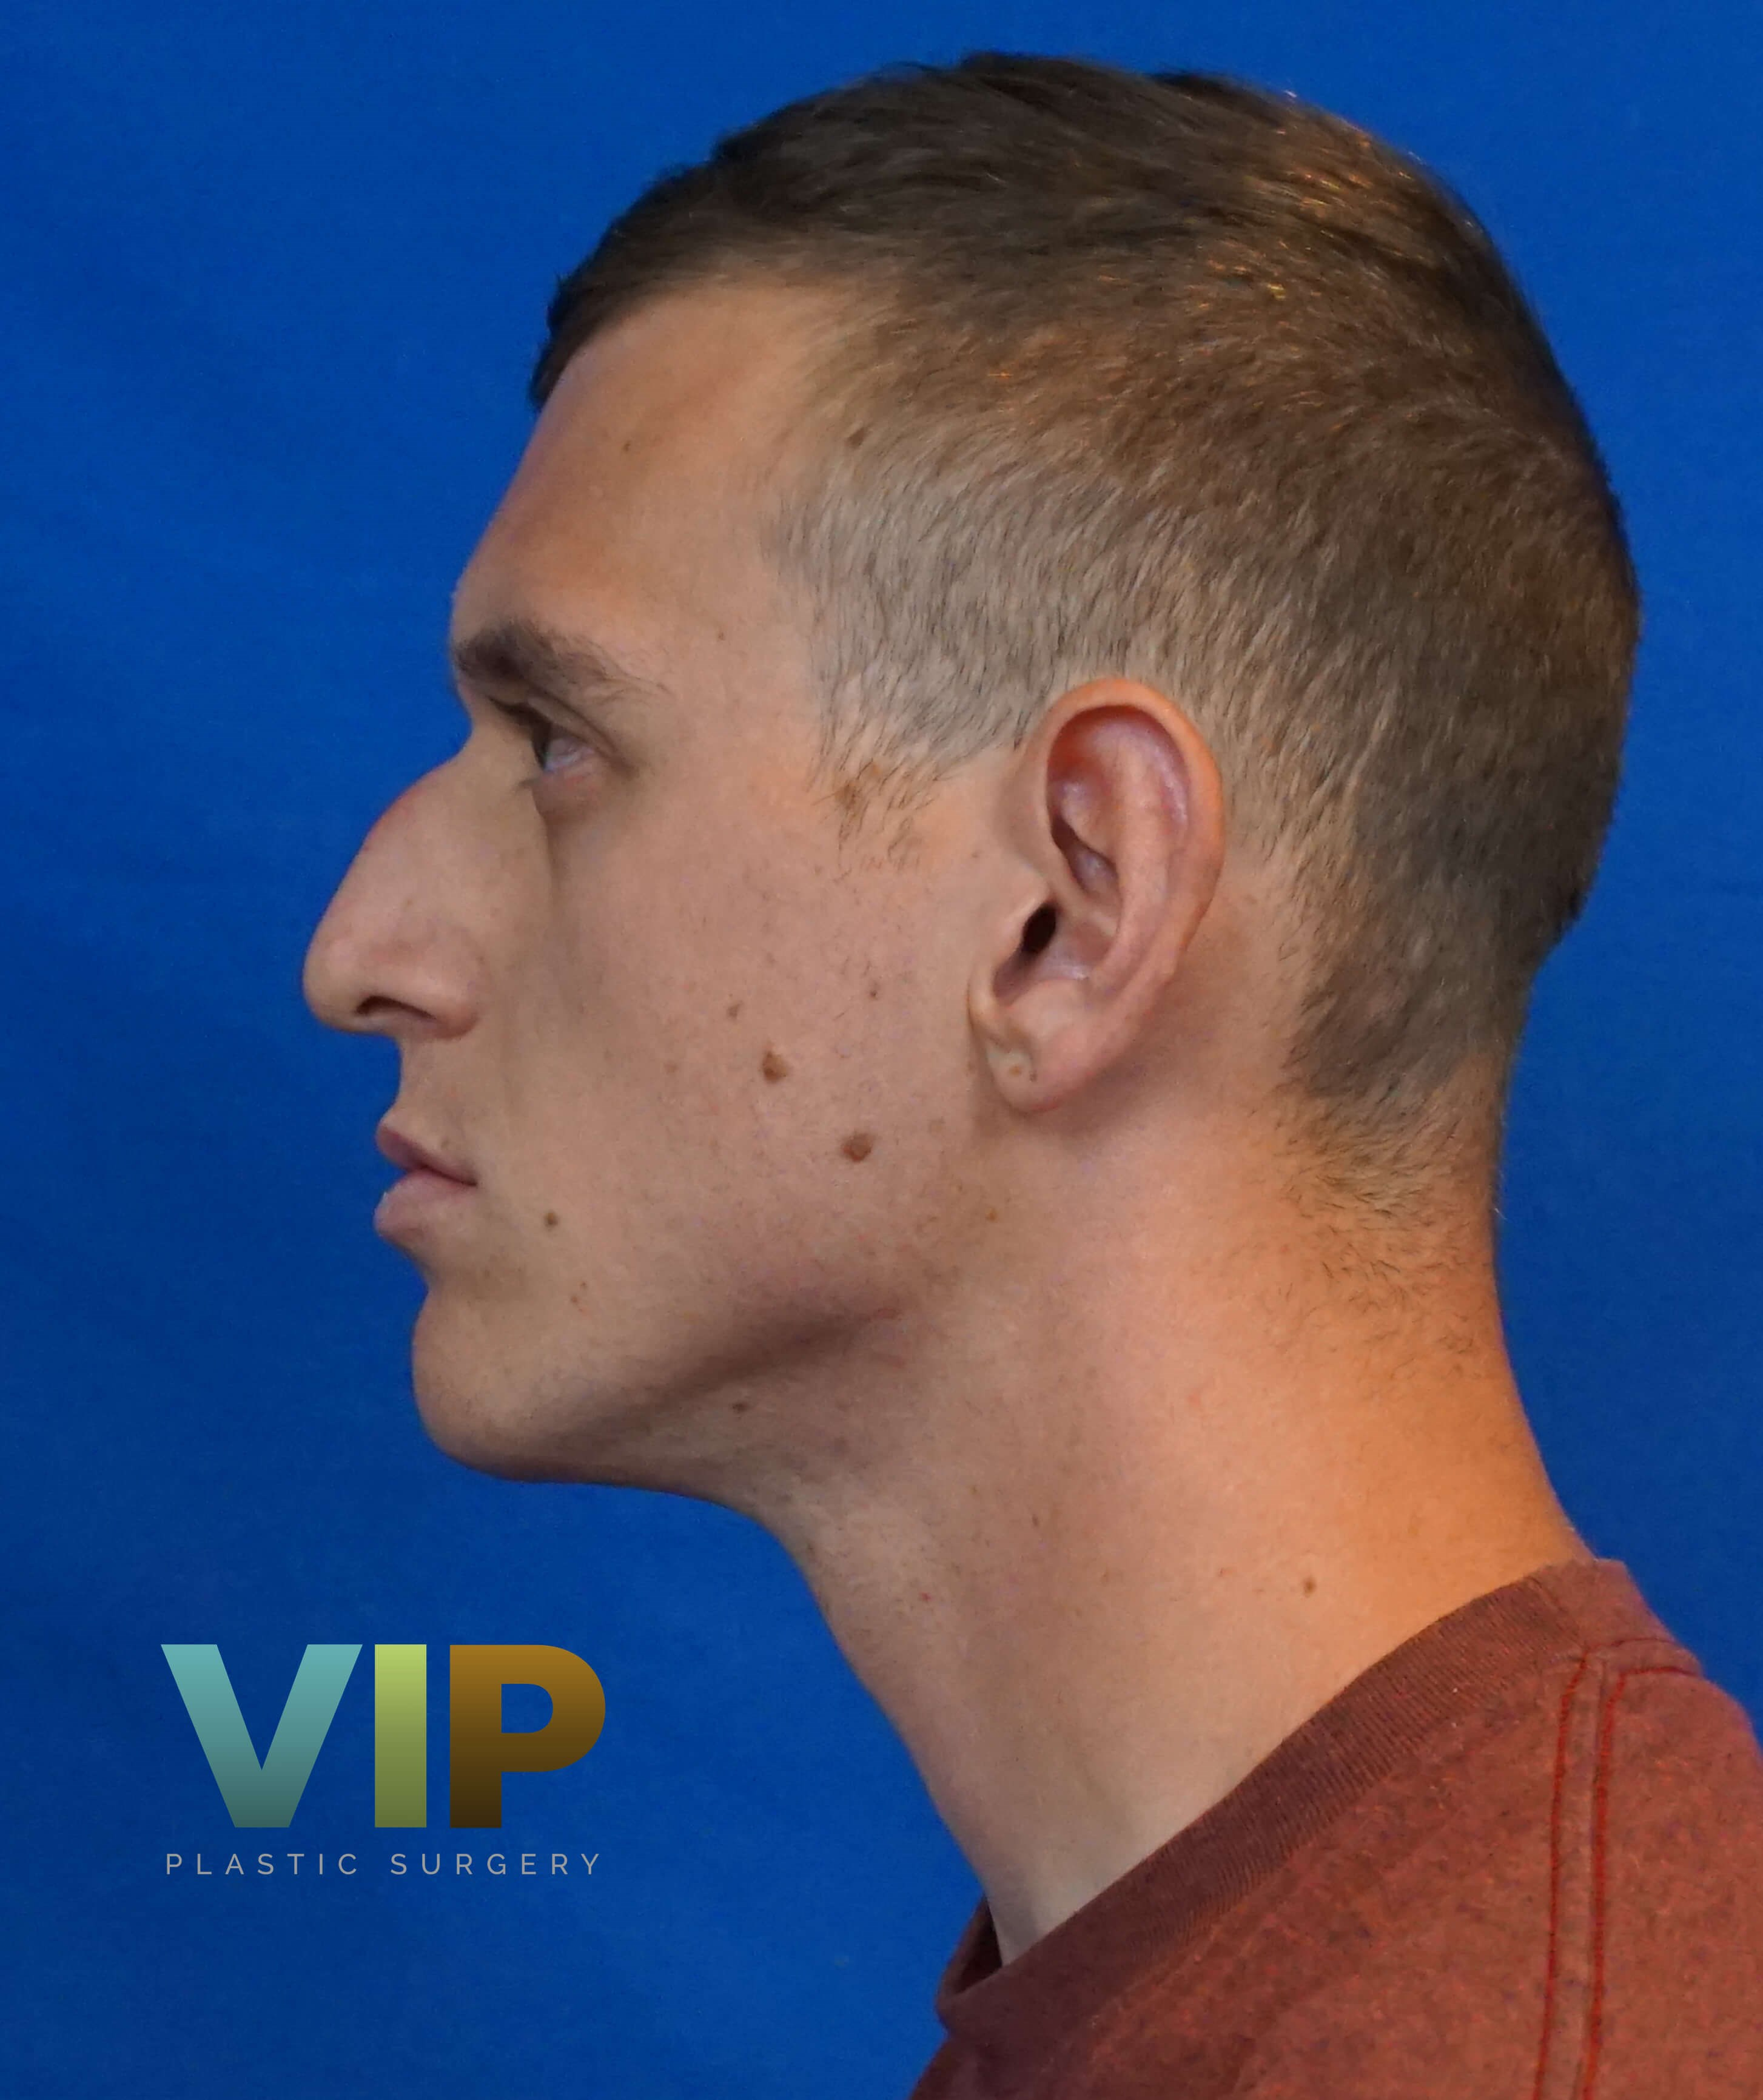 Male Nosejob Las Vegas Rhinoplasty Surgery Before Pic